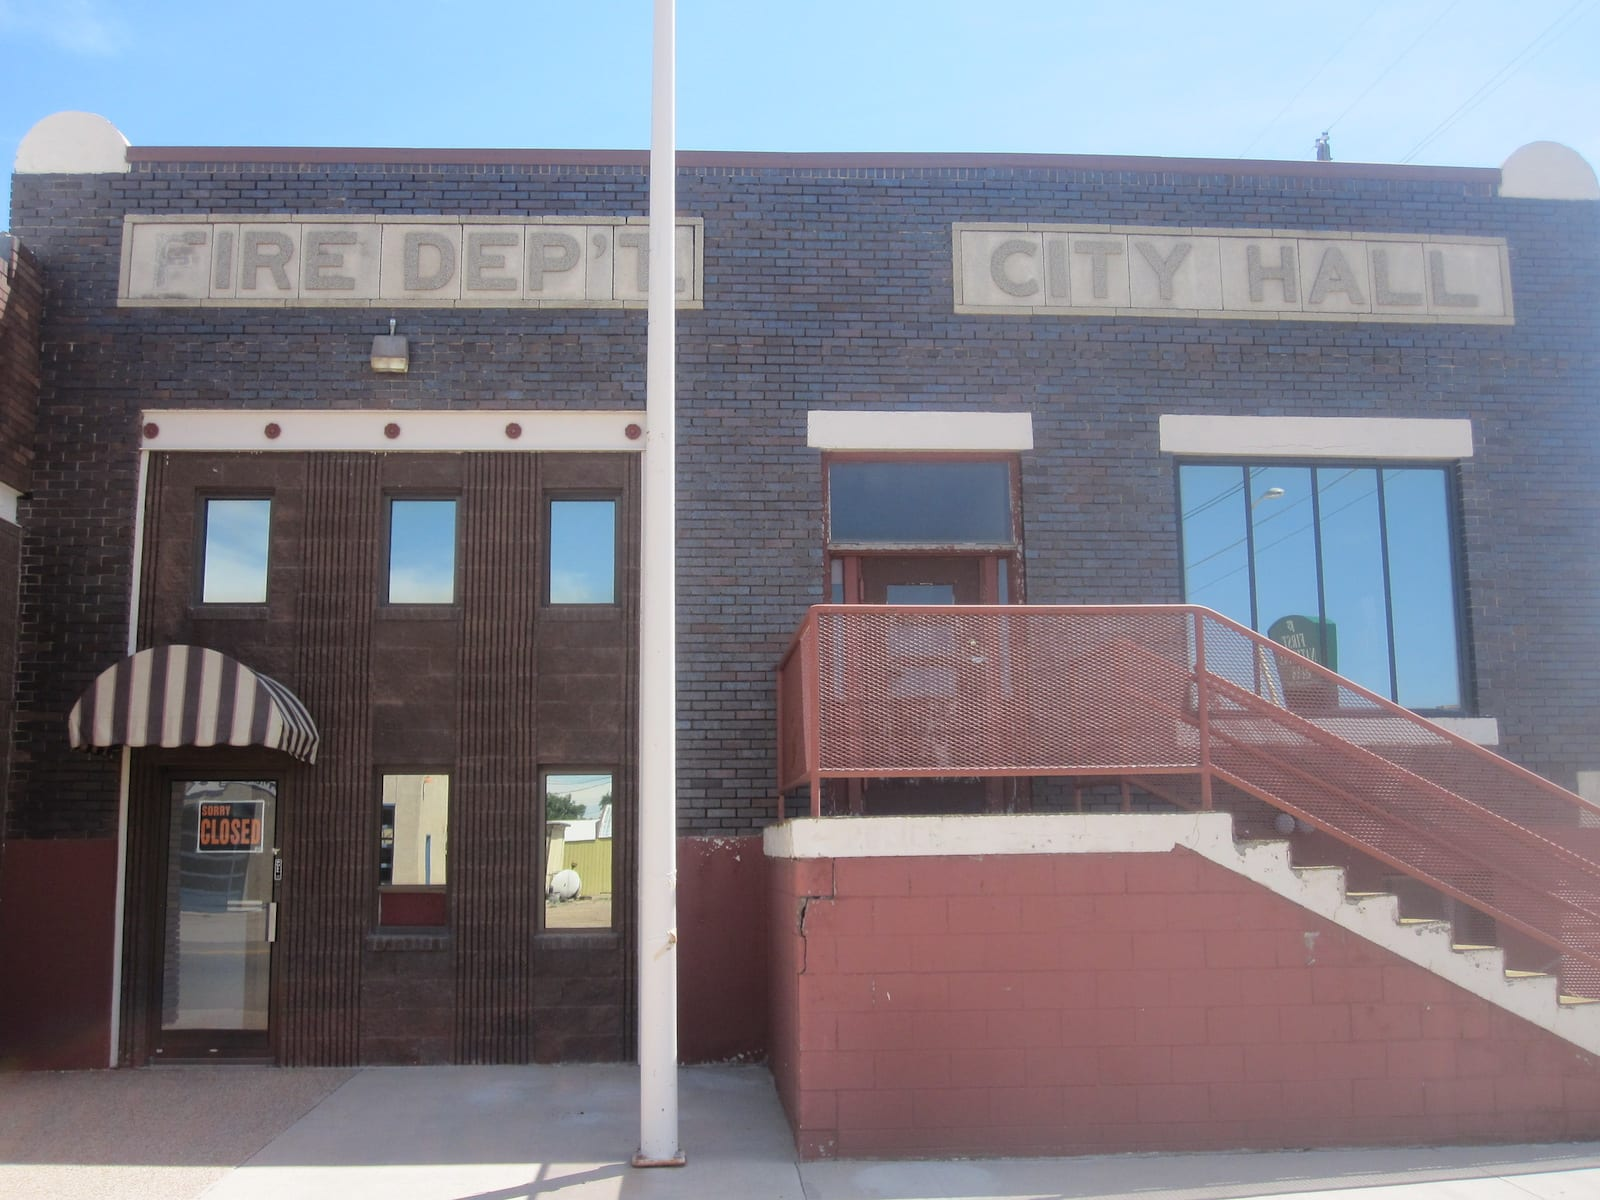 Fowler CO Fire Department and City Hall